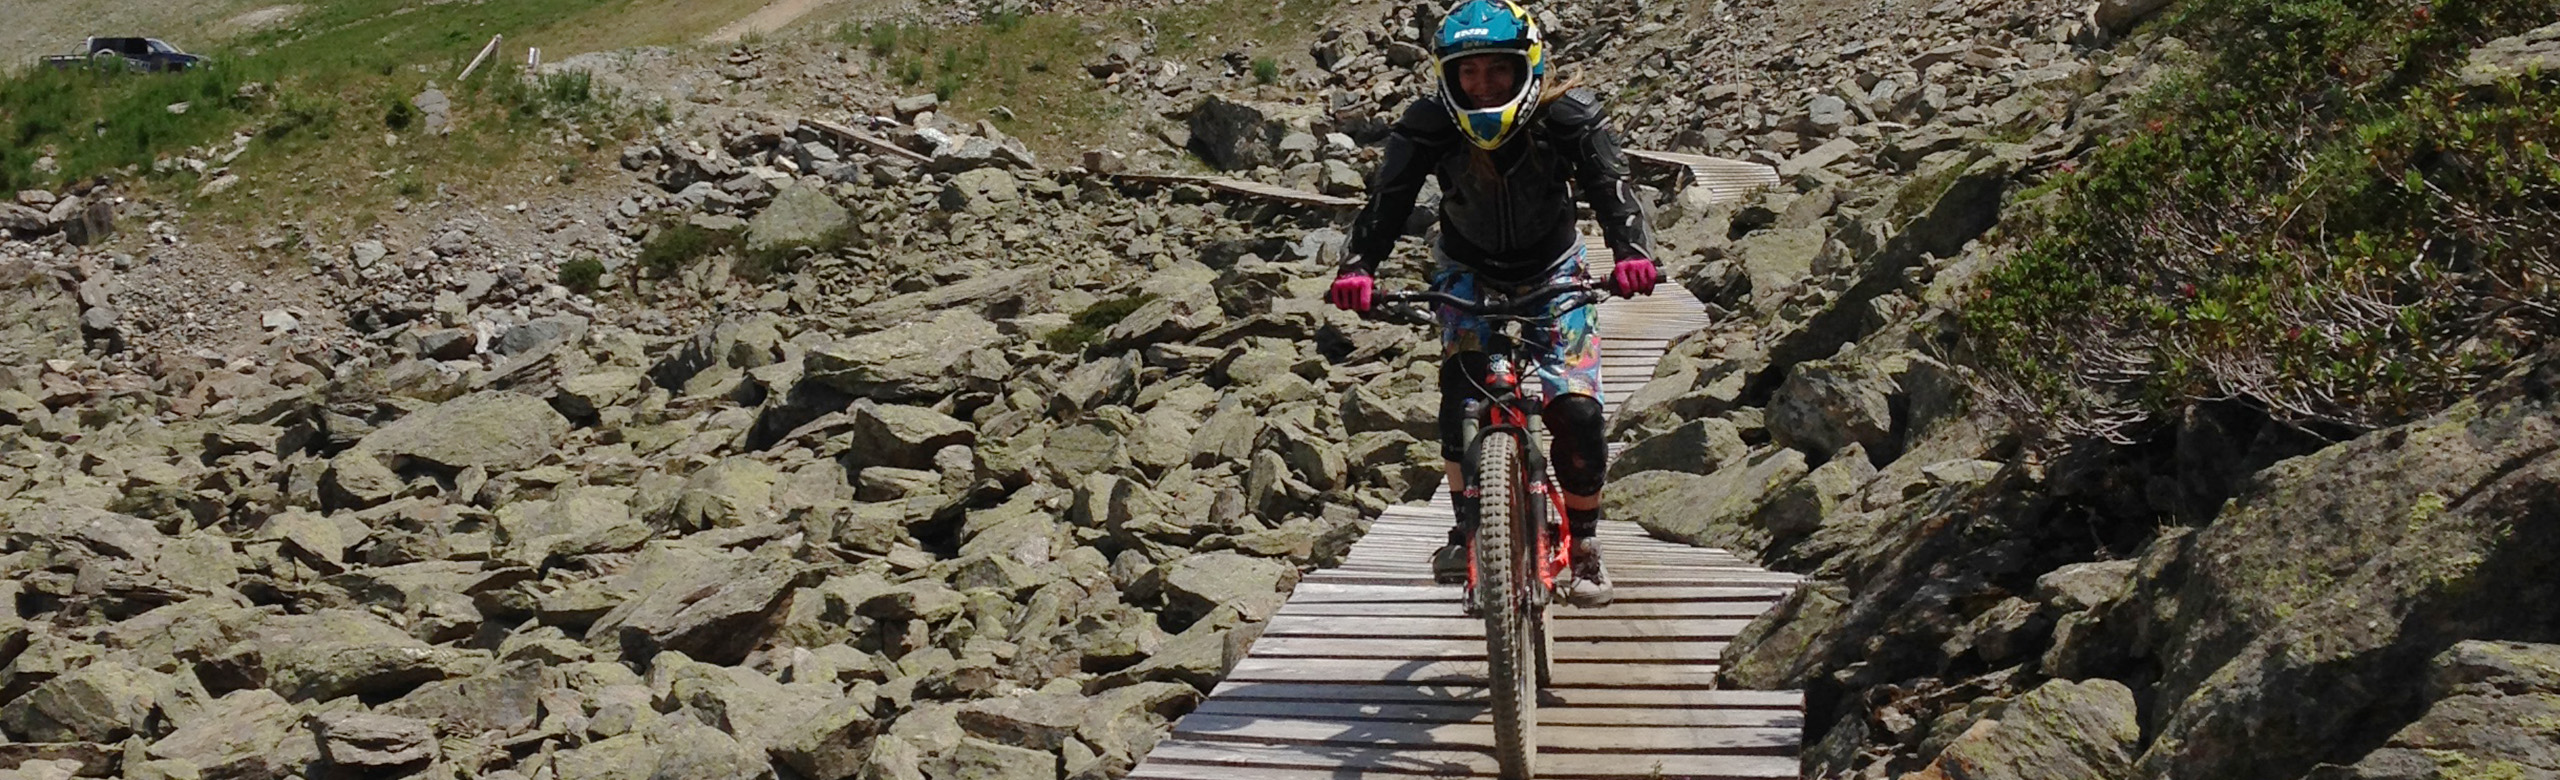 MTB Skills courses for all levels